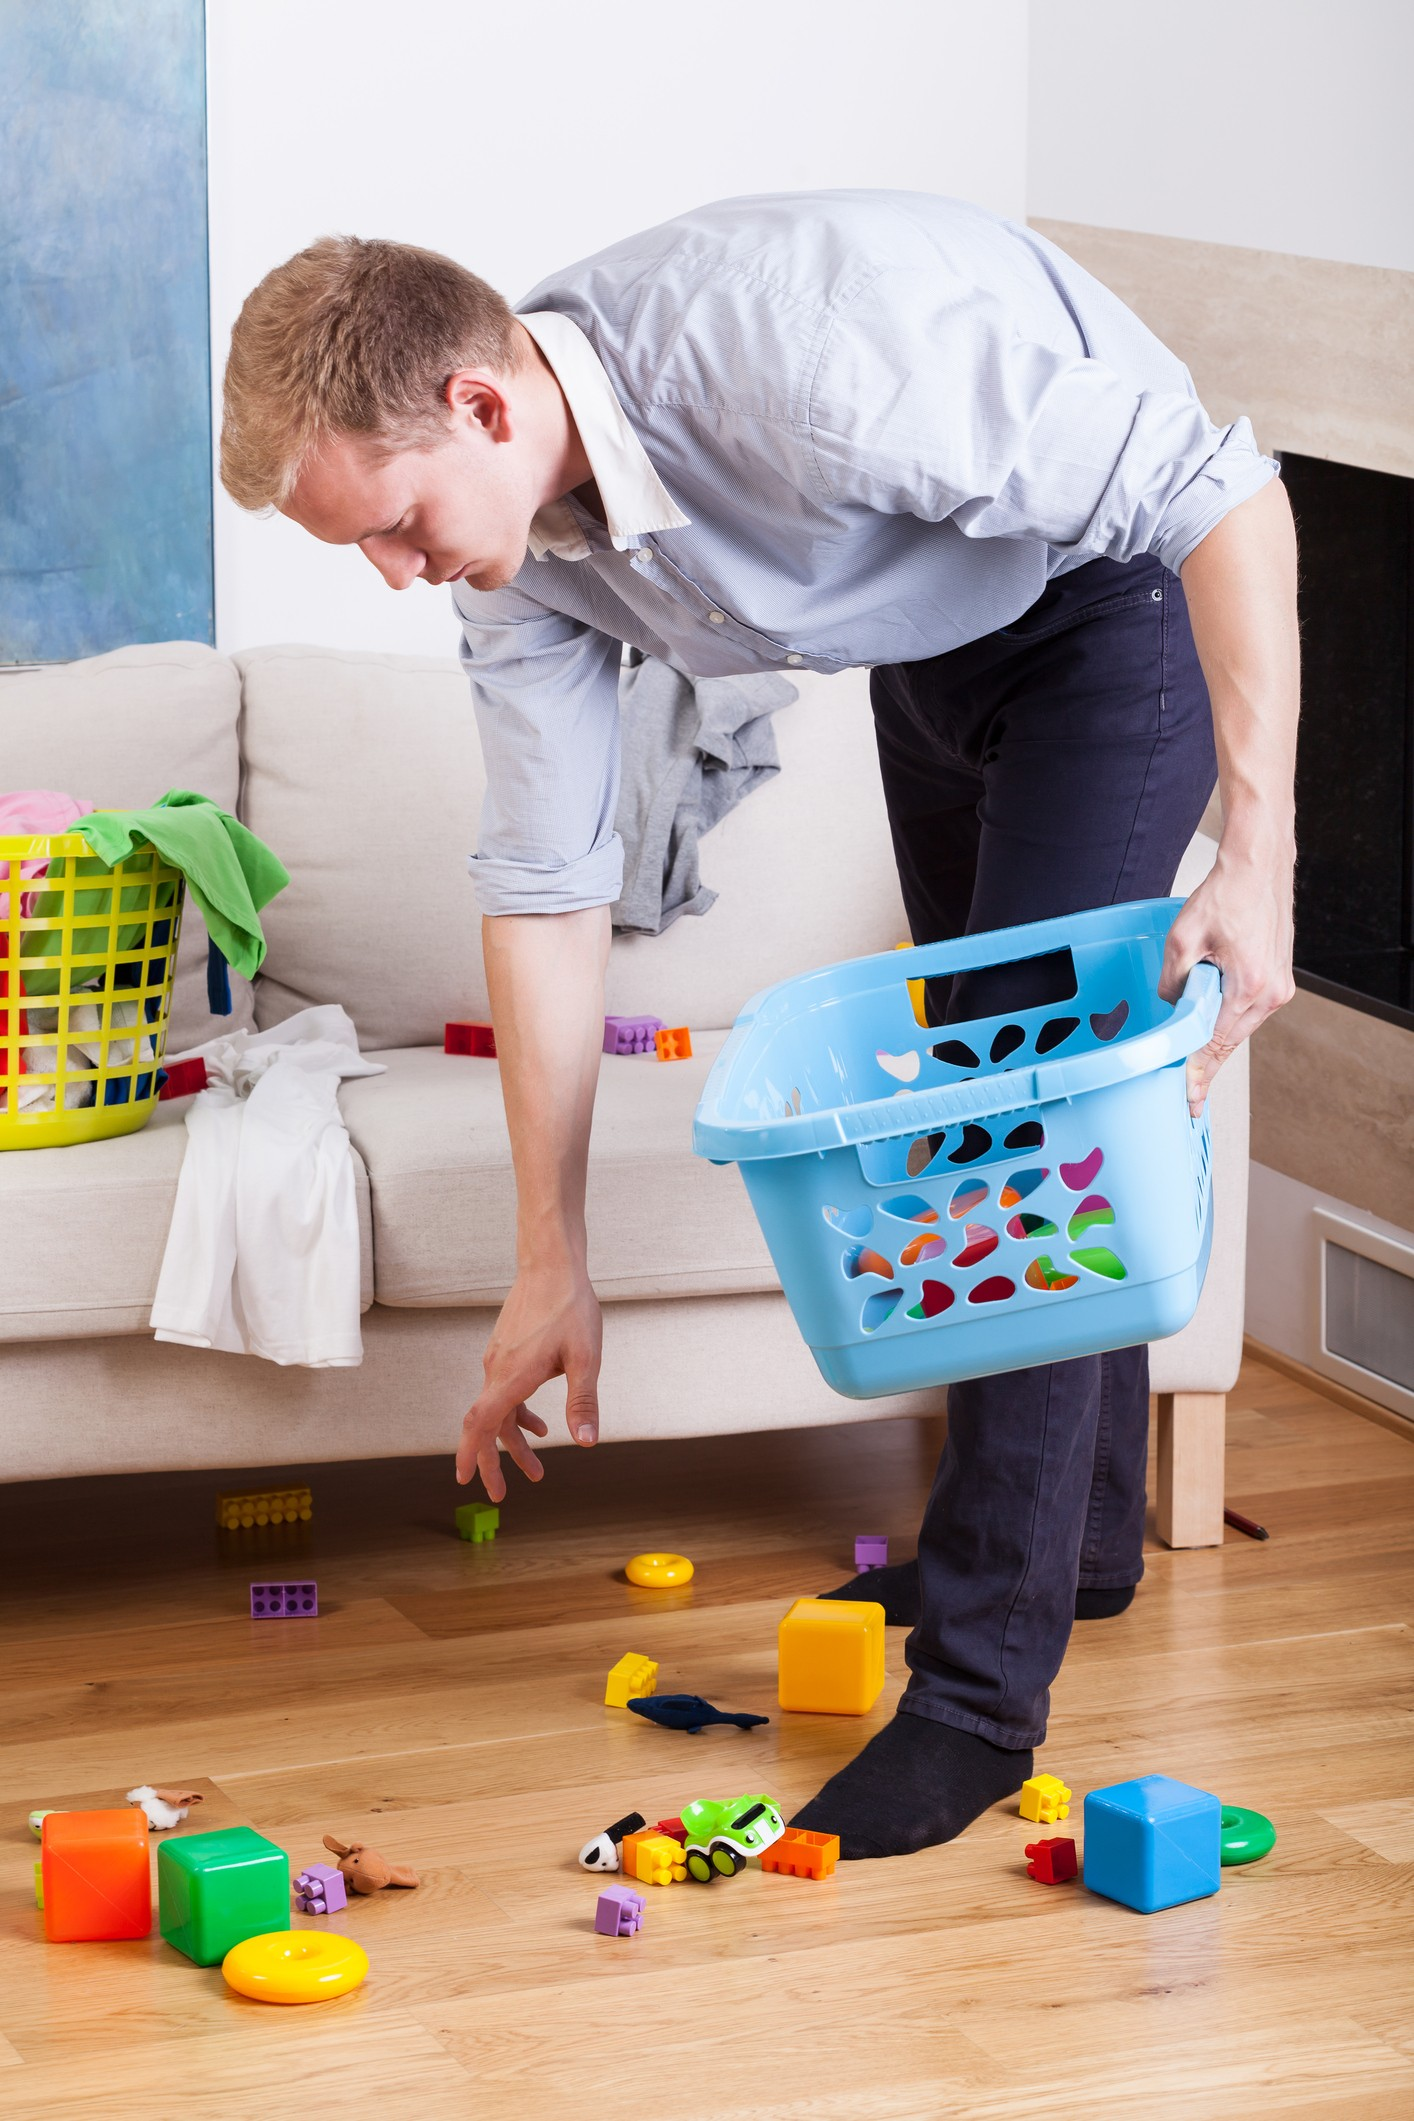 How to clean your living room in 5 minutes - How To Speed Clean Your House In Minutes